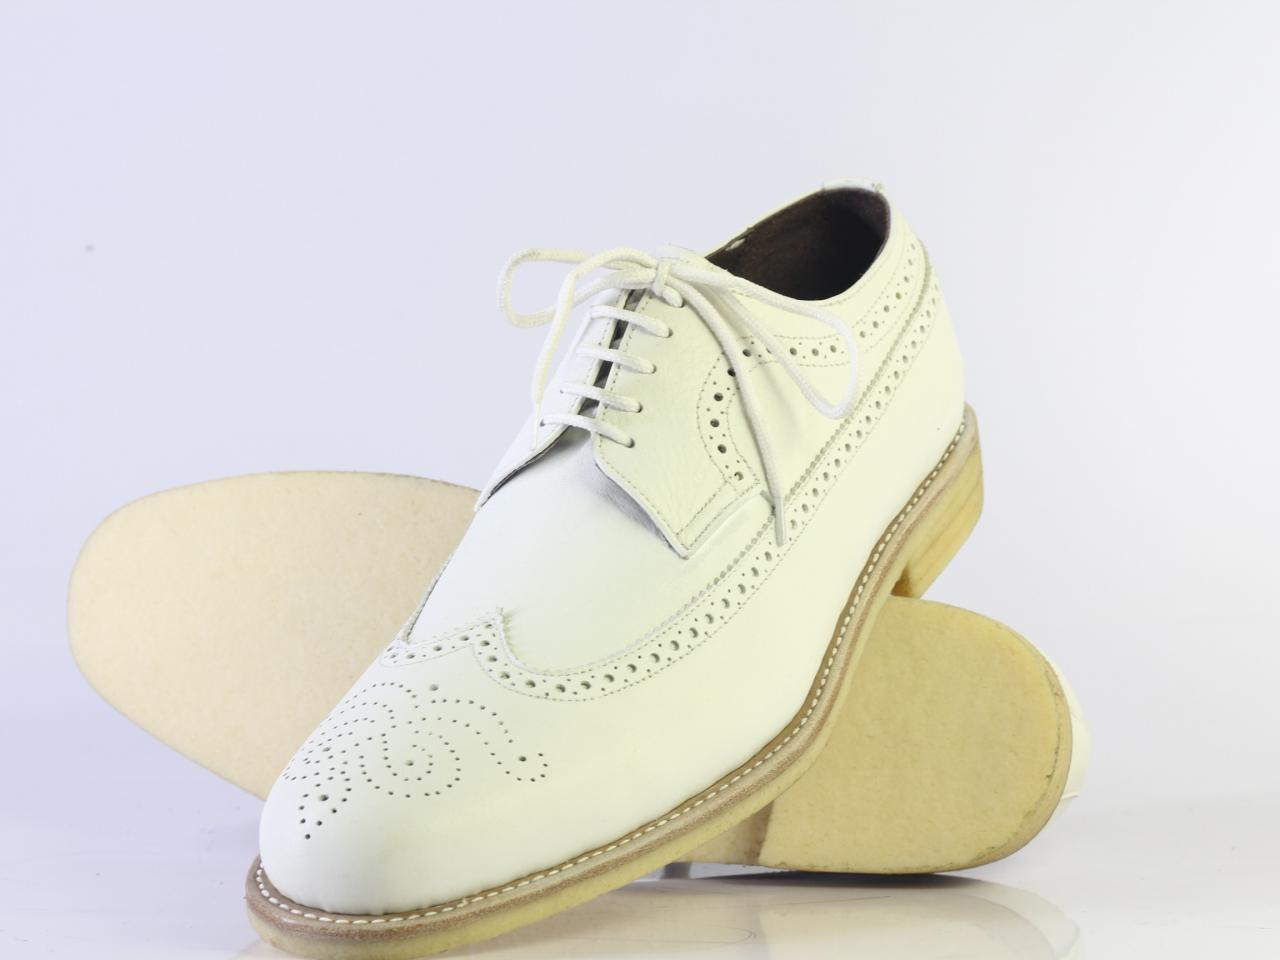 Men's Oxford White Genuine Leather Wing Tip Brogue Handmade Shoes For Men